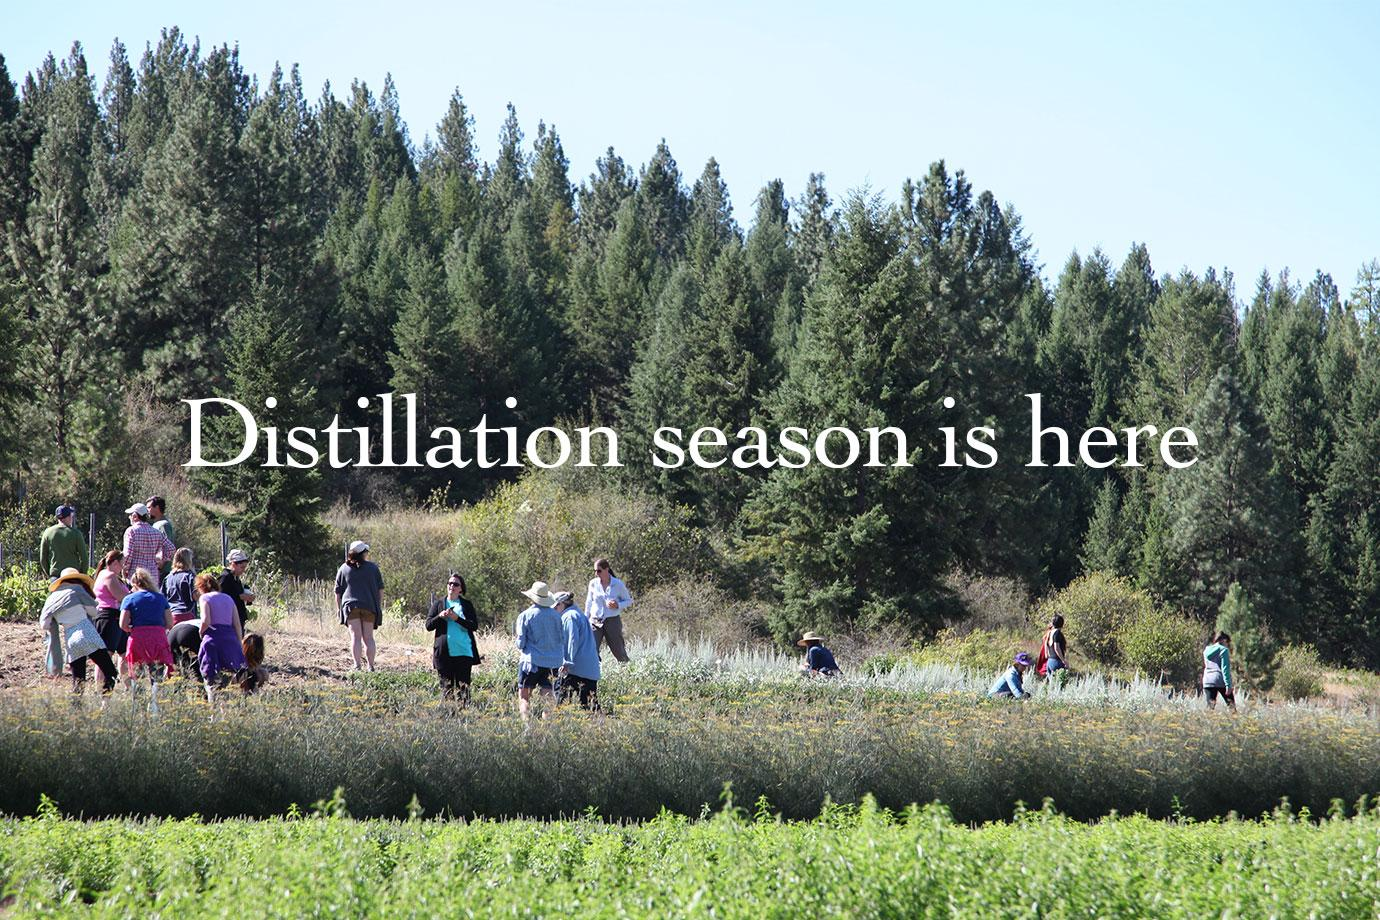 Distillation season is here